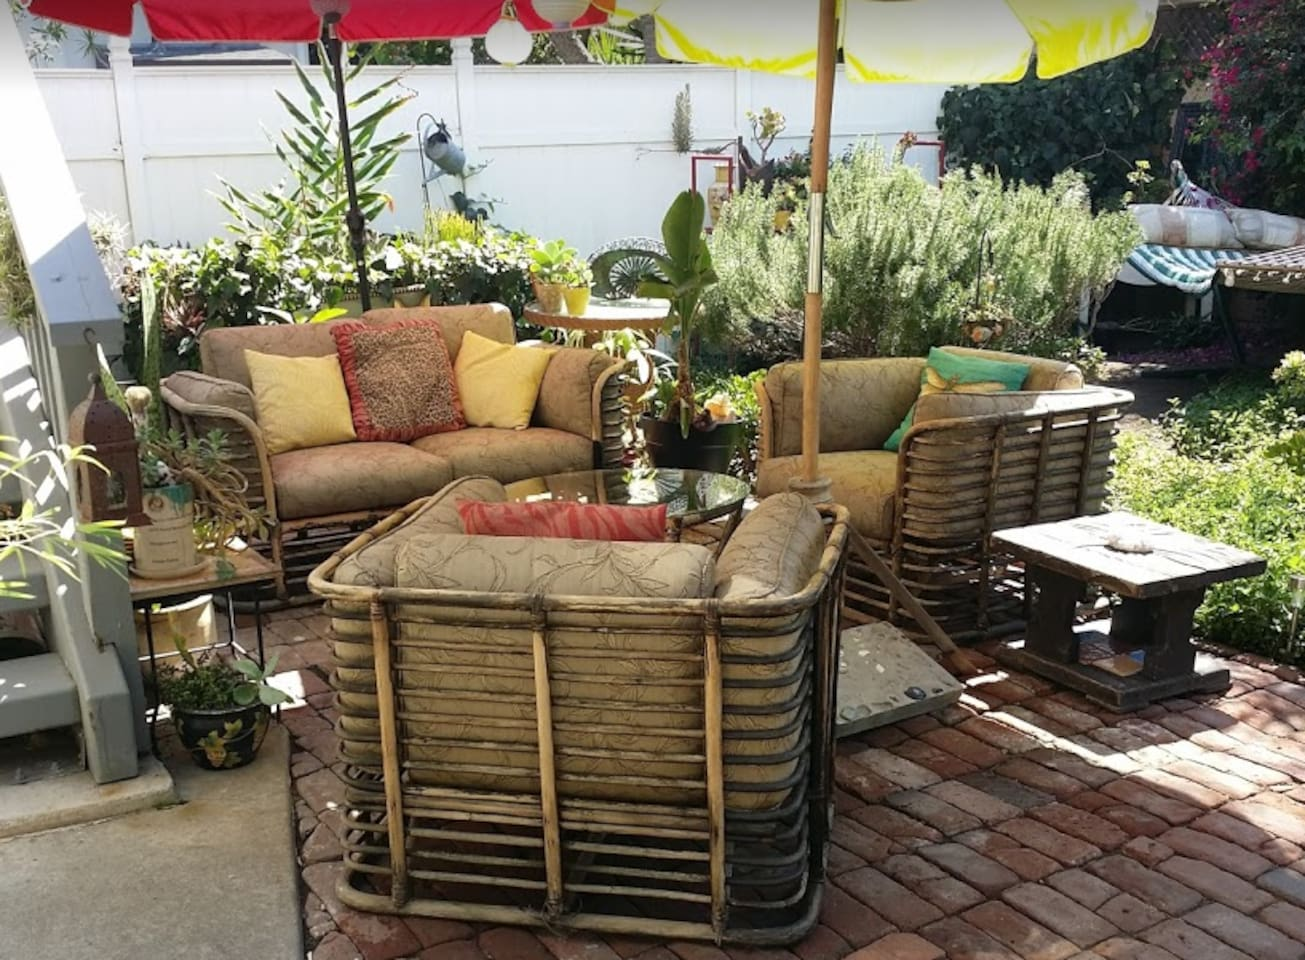 Relax in our patio garden in the shade after a long day or for that early morning coffee.